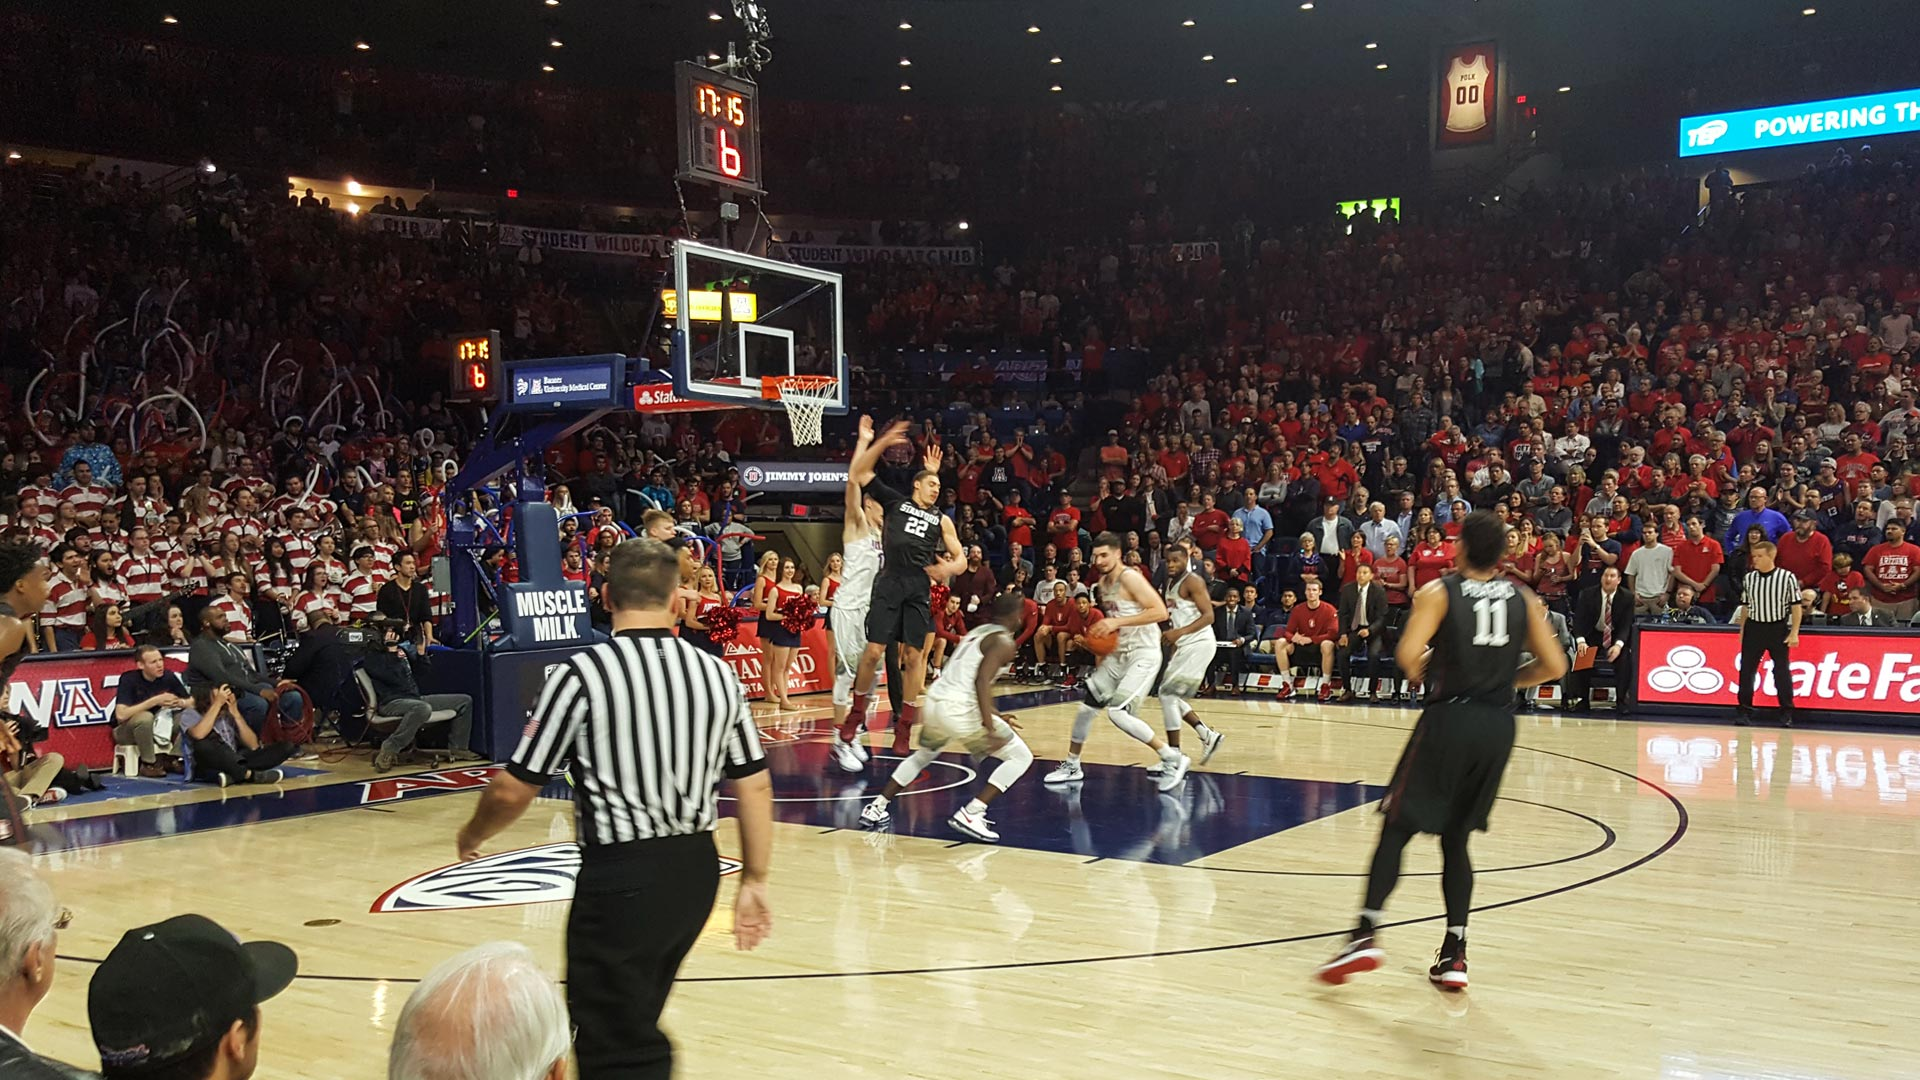 The University of Arizona men's basketball team plays a home game against Stanford in February 2017.